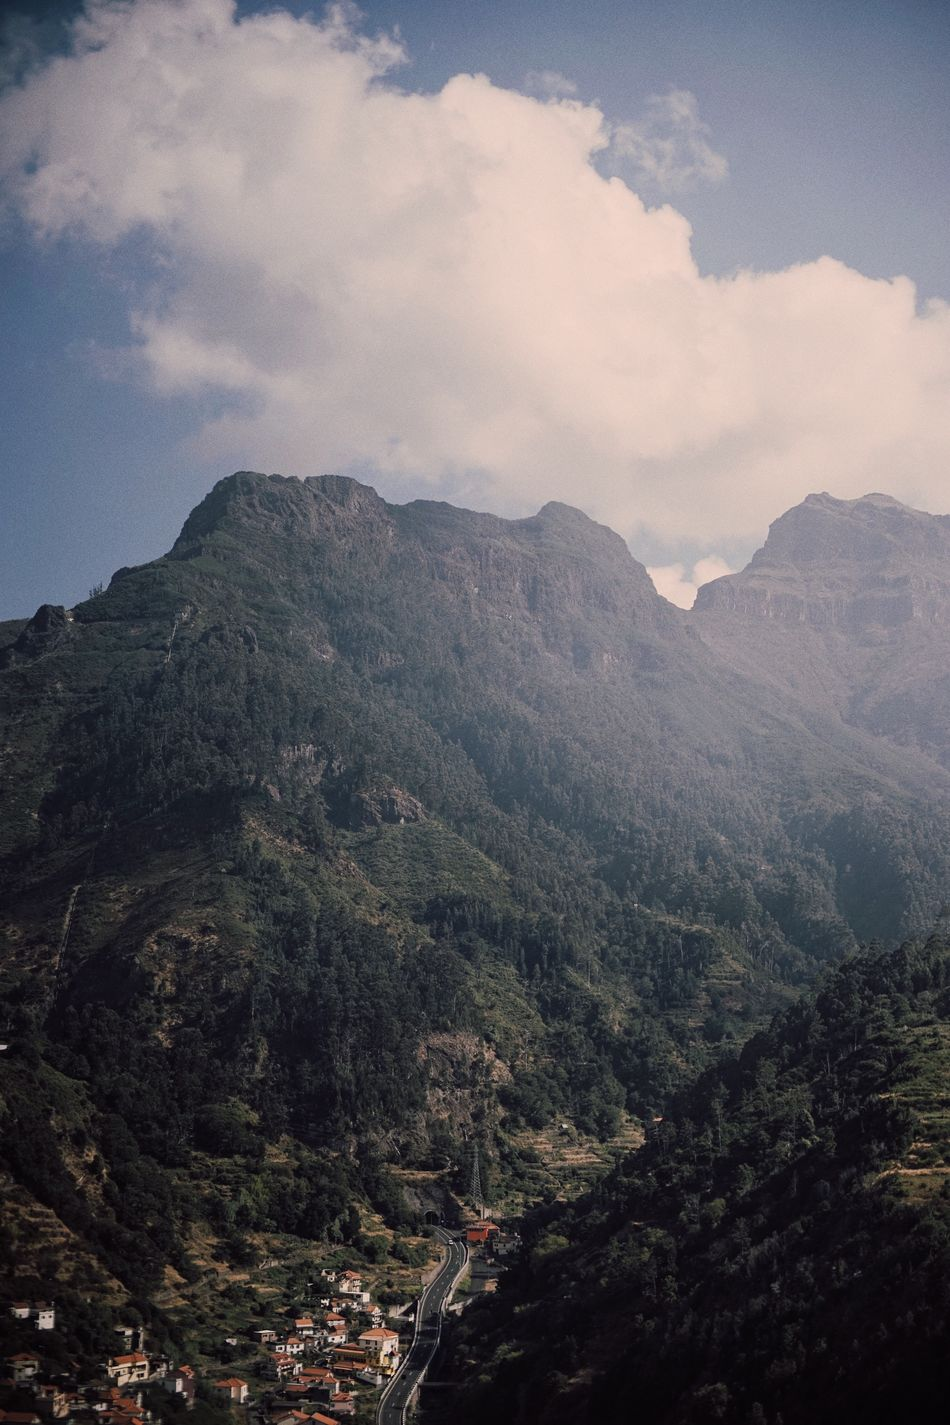 All the way up. Mountain Scenics Sky Mountain Range Nature Majestic Valley Coast Landscape People And Places The Week Of Eyeem Landscapes Nature Photography Portugal Madeira Cloudy Nature Cloud Clouds Beauty In Nature Landscape_Collection Tranquil Scene Cloud - Sky Tourism Tourist